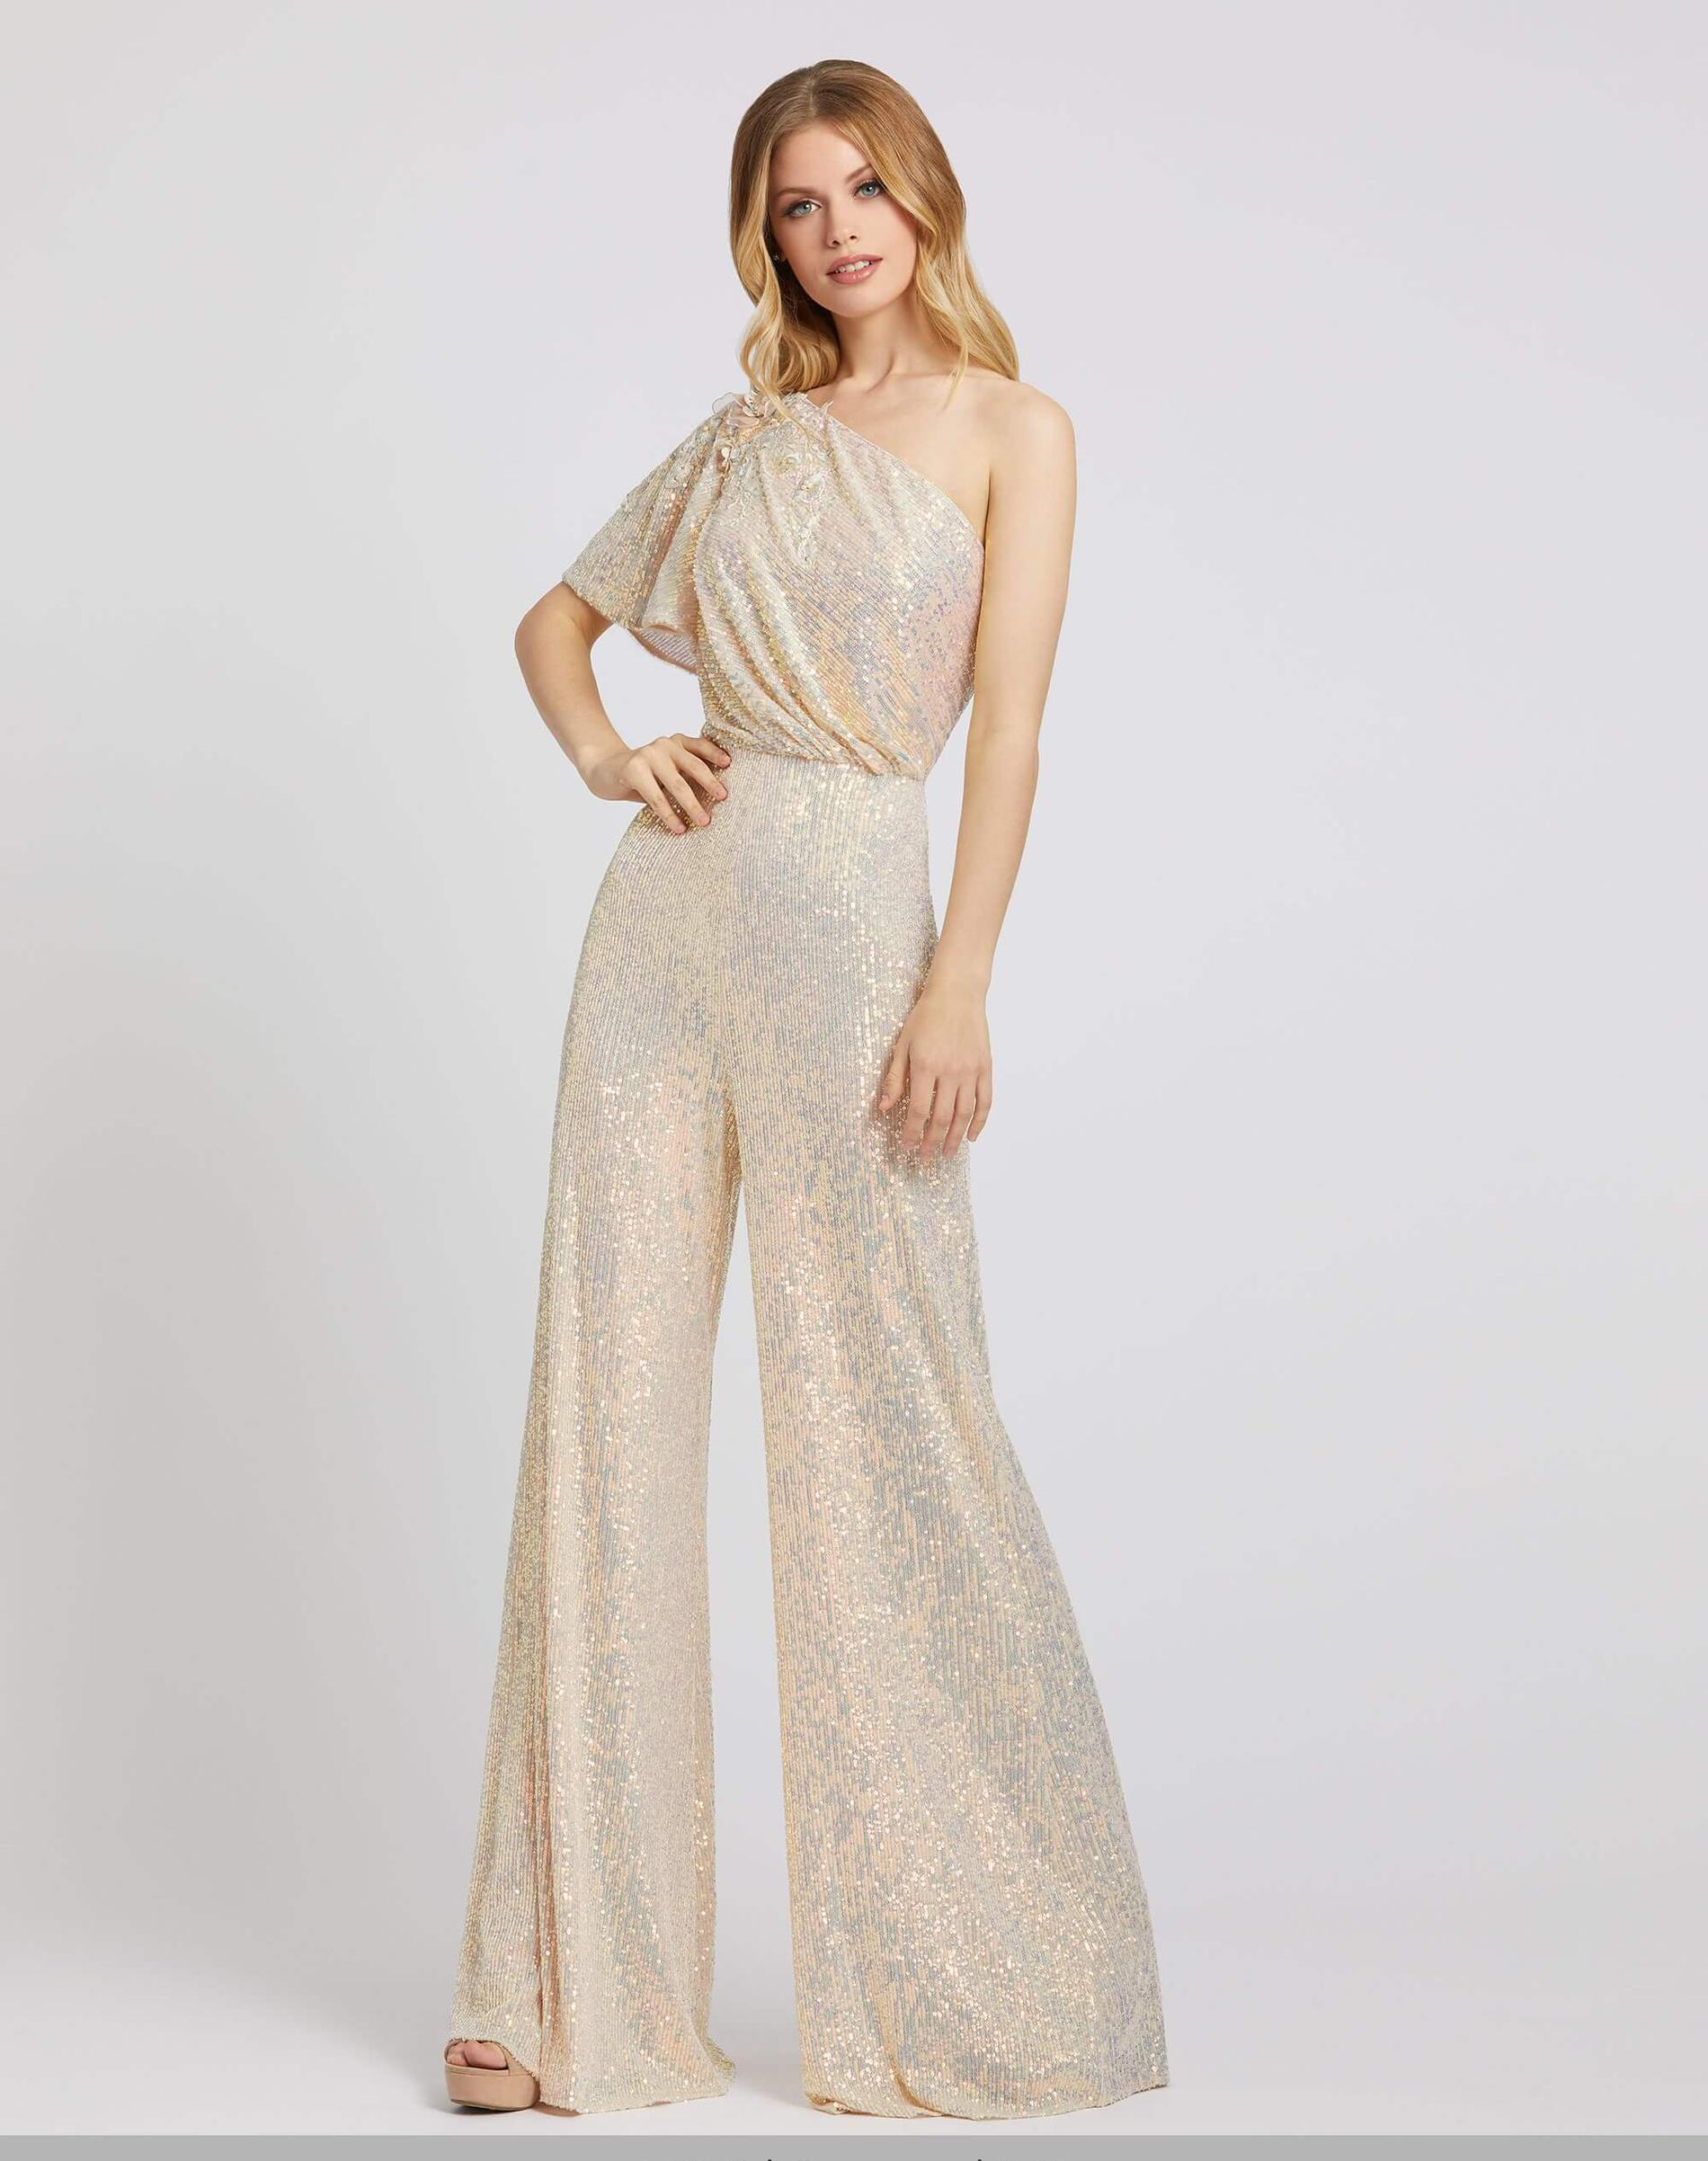 Style 30692 Mac Duggal Gold Size 4 Tall Height Wedding Guest Jumpsuit Dress on Queenly